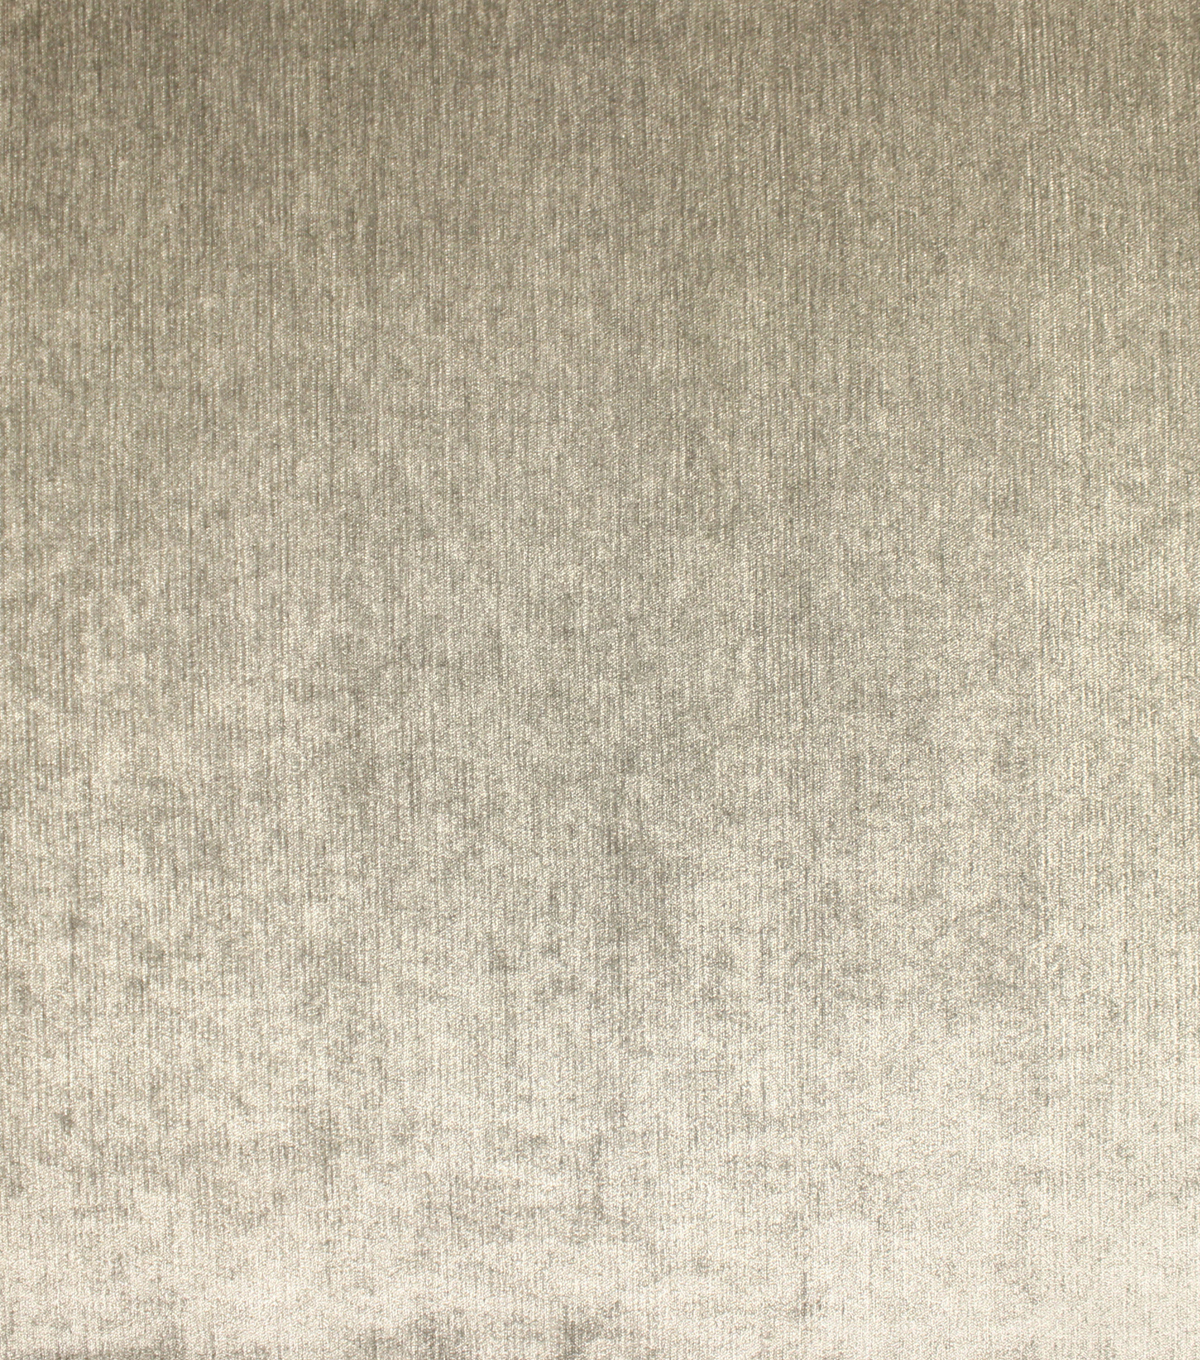 Barrow Upholstery Decor Fabric 56\u0022-Mist